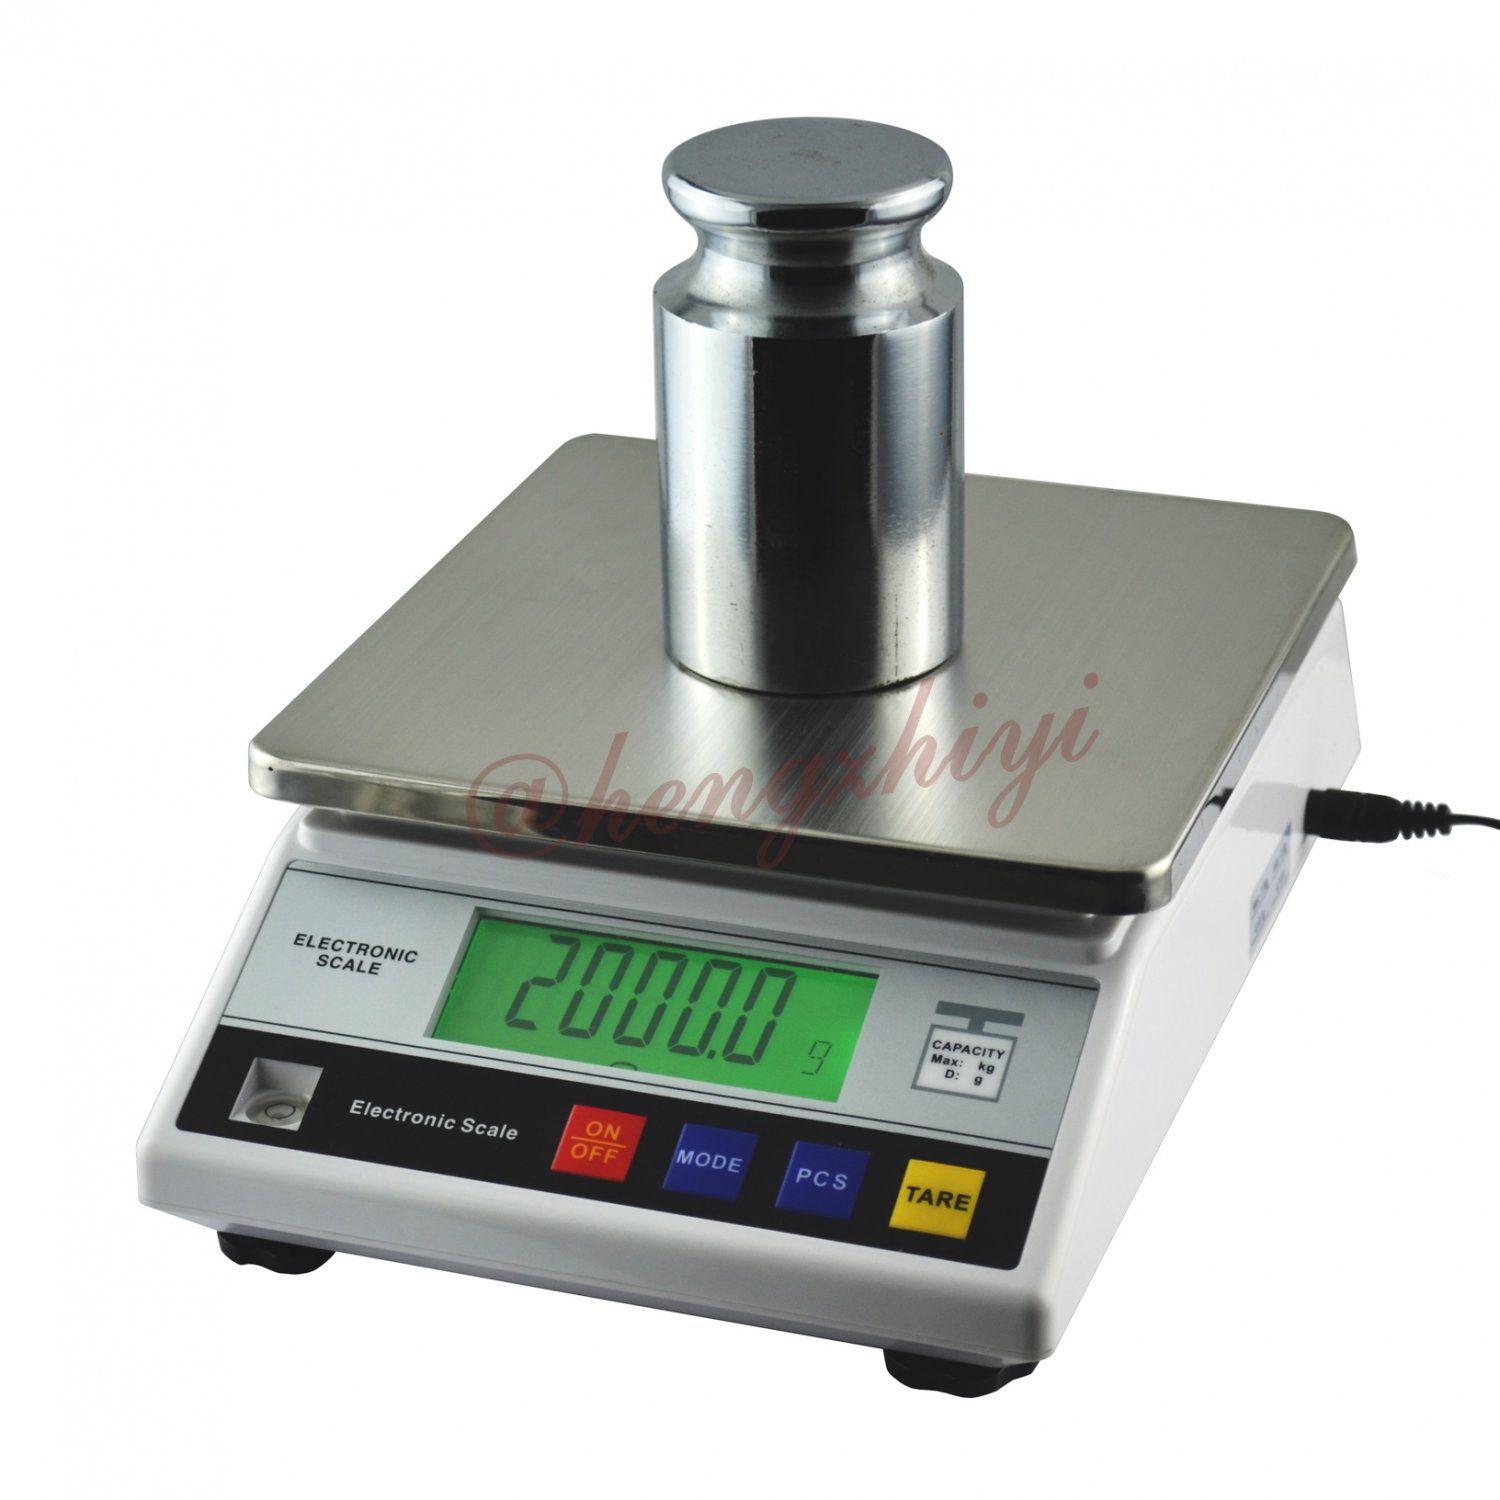 Weight Scales Big W 10kg X 1g Digital Accurate Balance W Counting Table Top